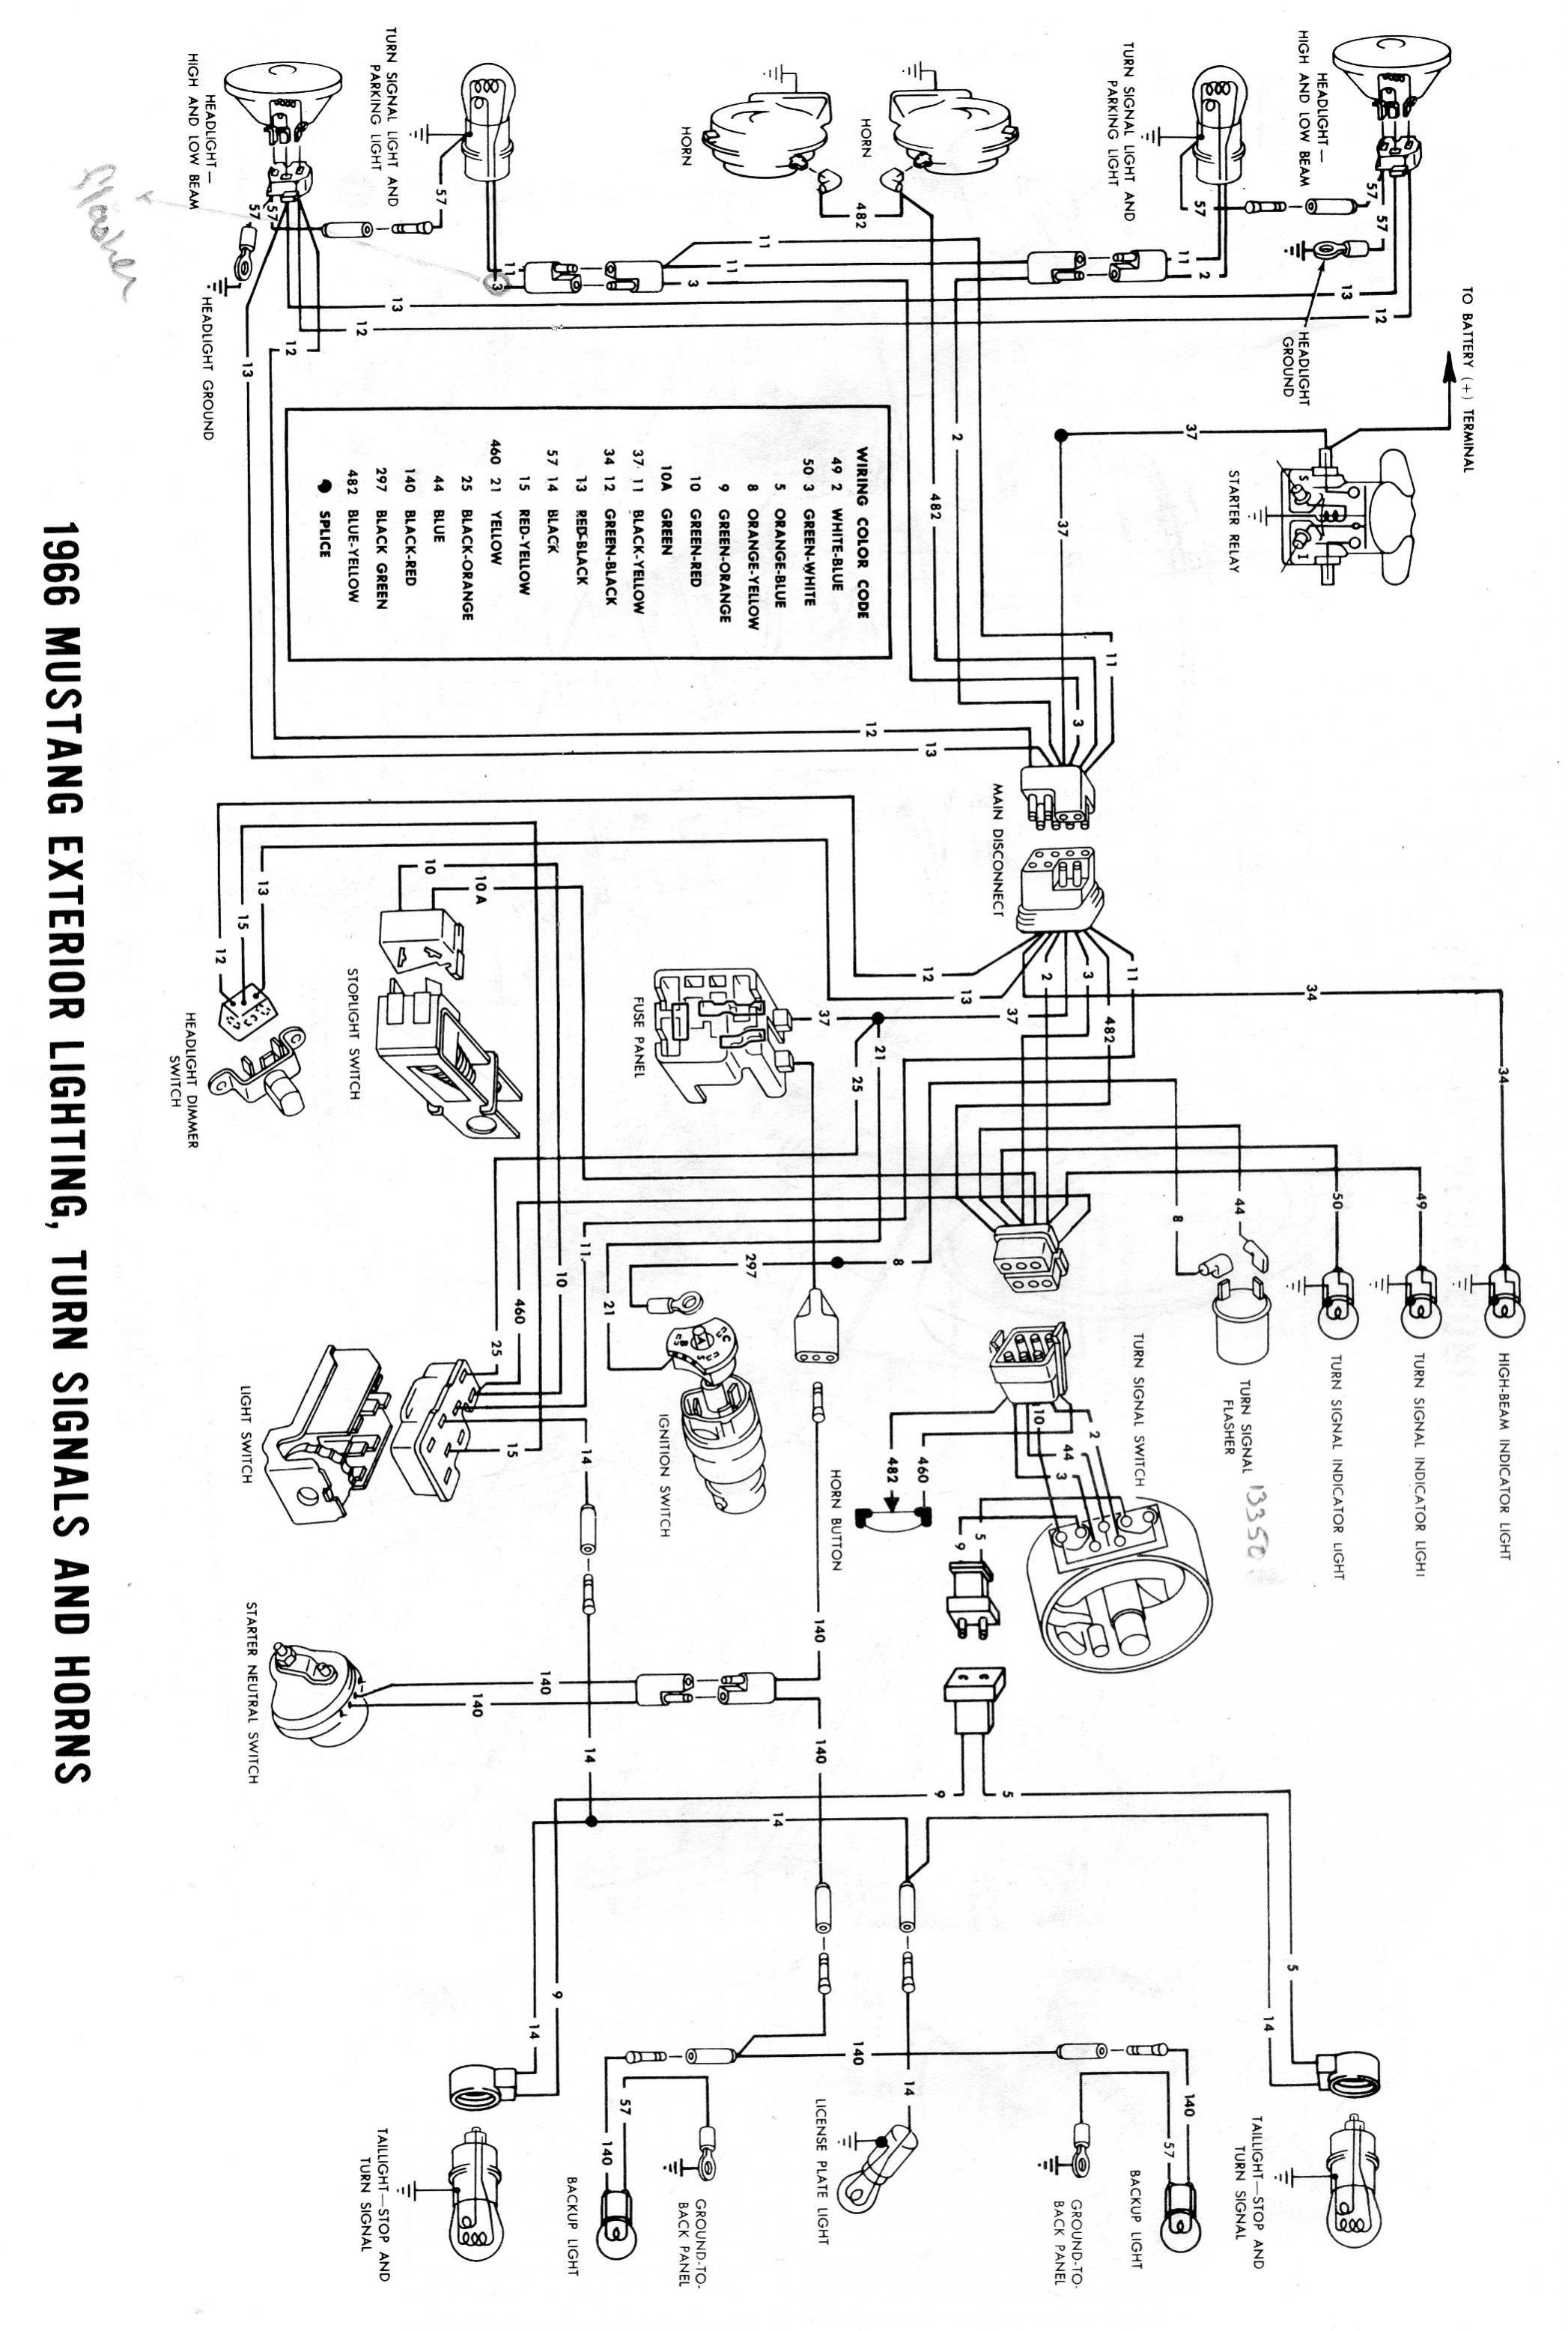 1966 Mustang Fuse Diagram | Wiring Diagram on battery diagram, triumph controller diagram, triumph chopper wiring for, triumph frame diagram, triumph 650 wiring harness, triumph parts diagram, triumph clutch diagram,